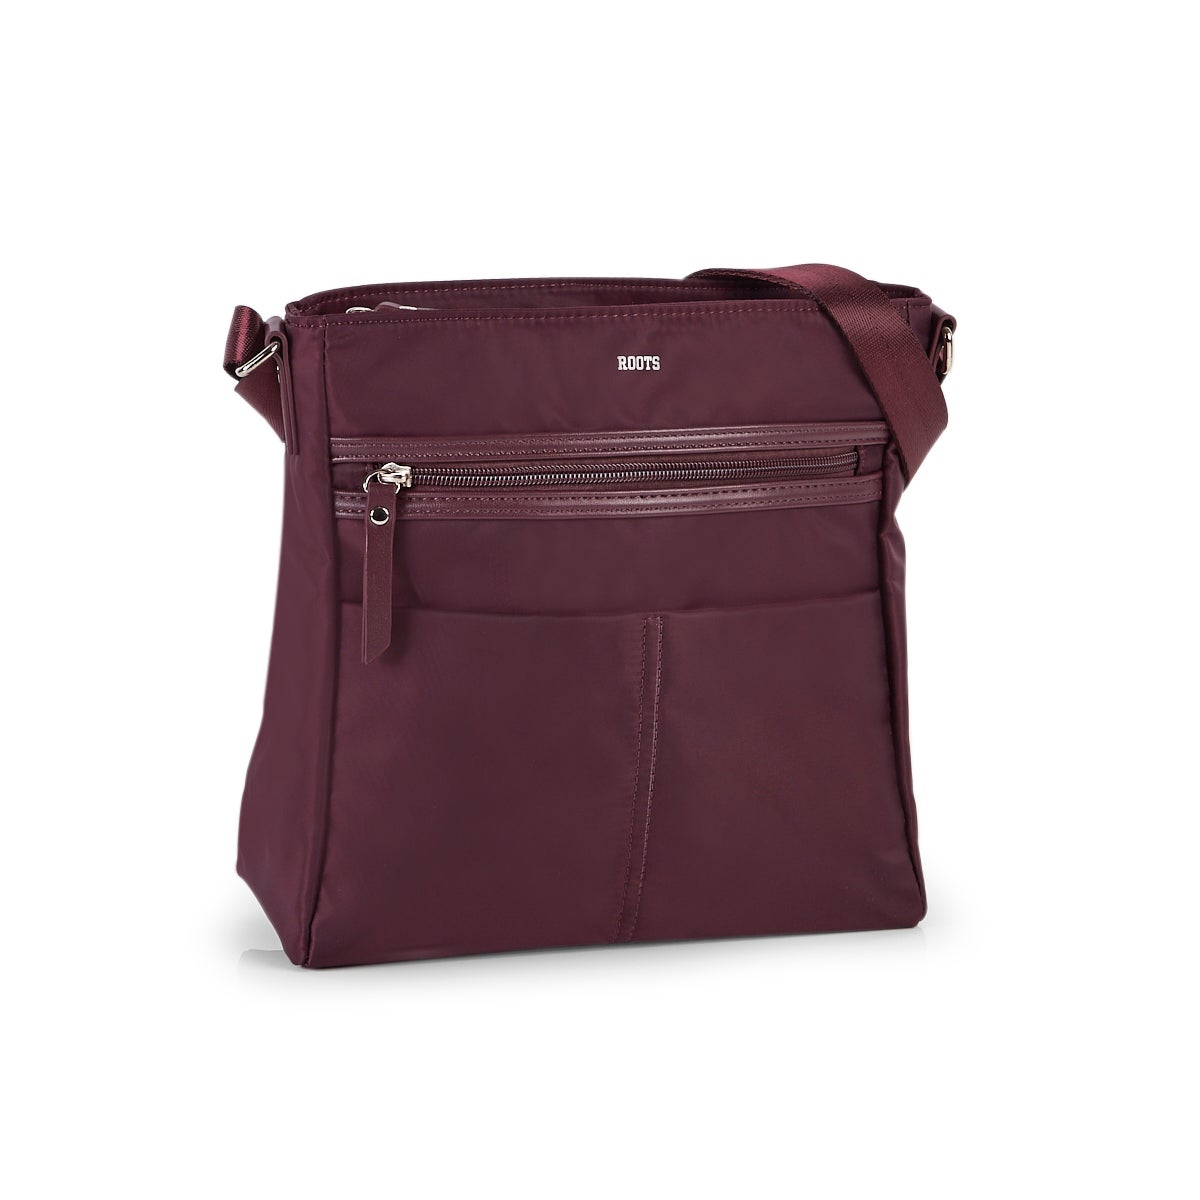 Lds Roots73 bgdy n/s mlti pckt crossbody